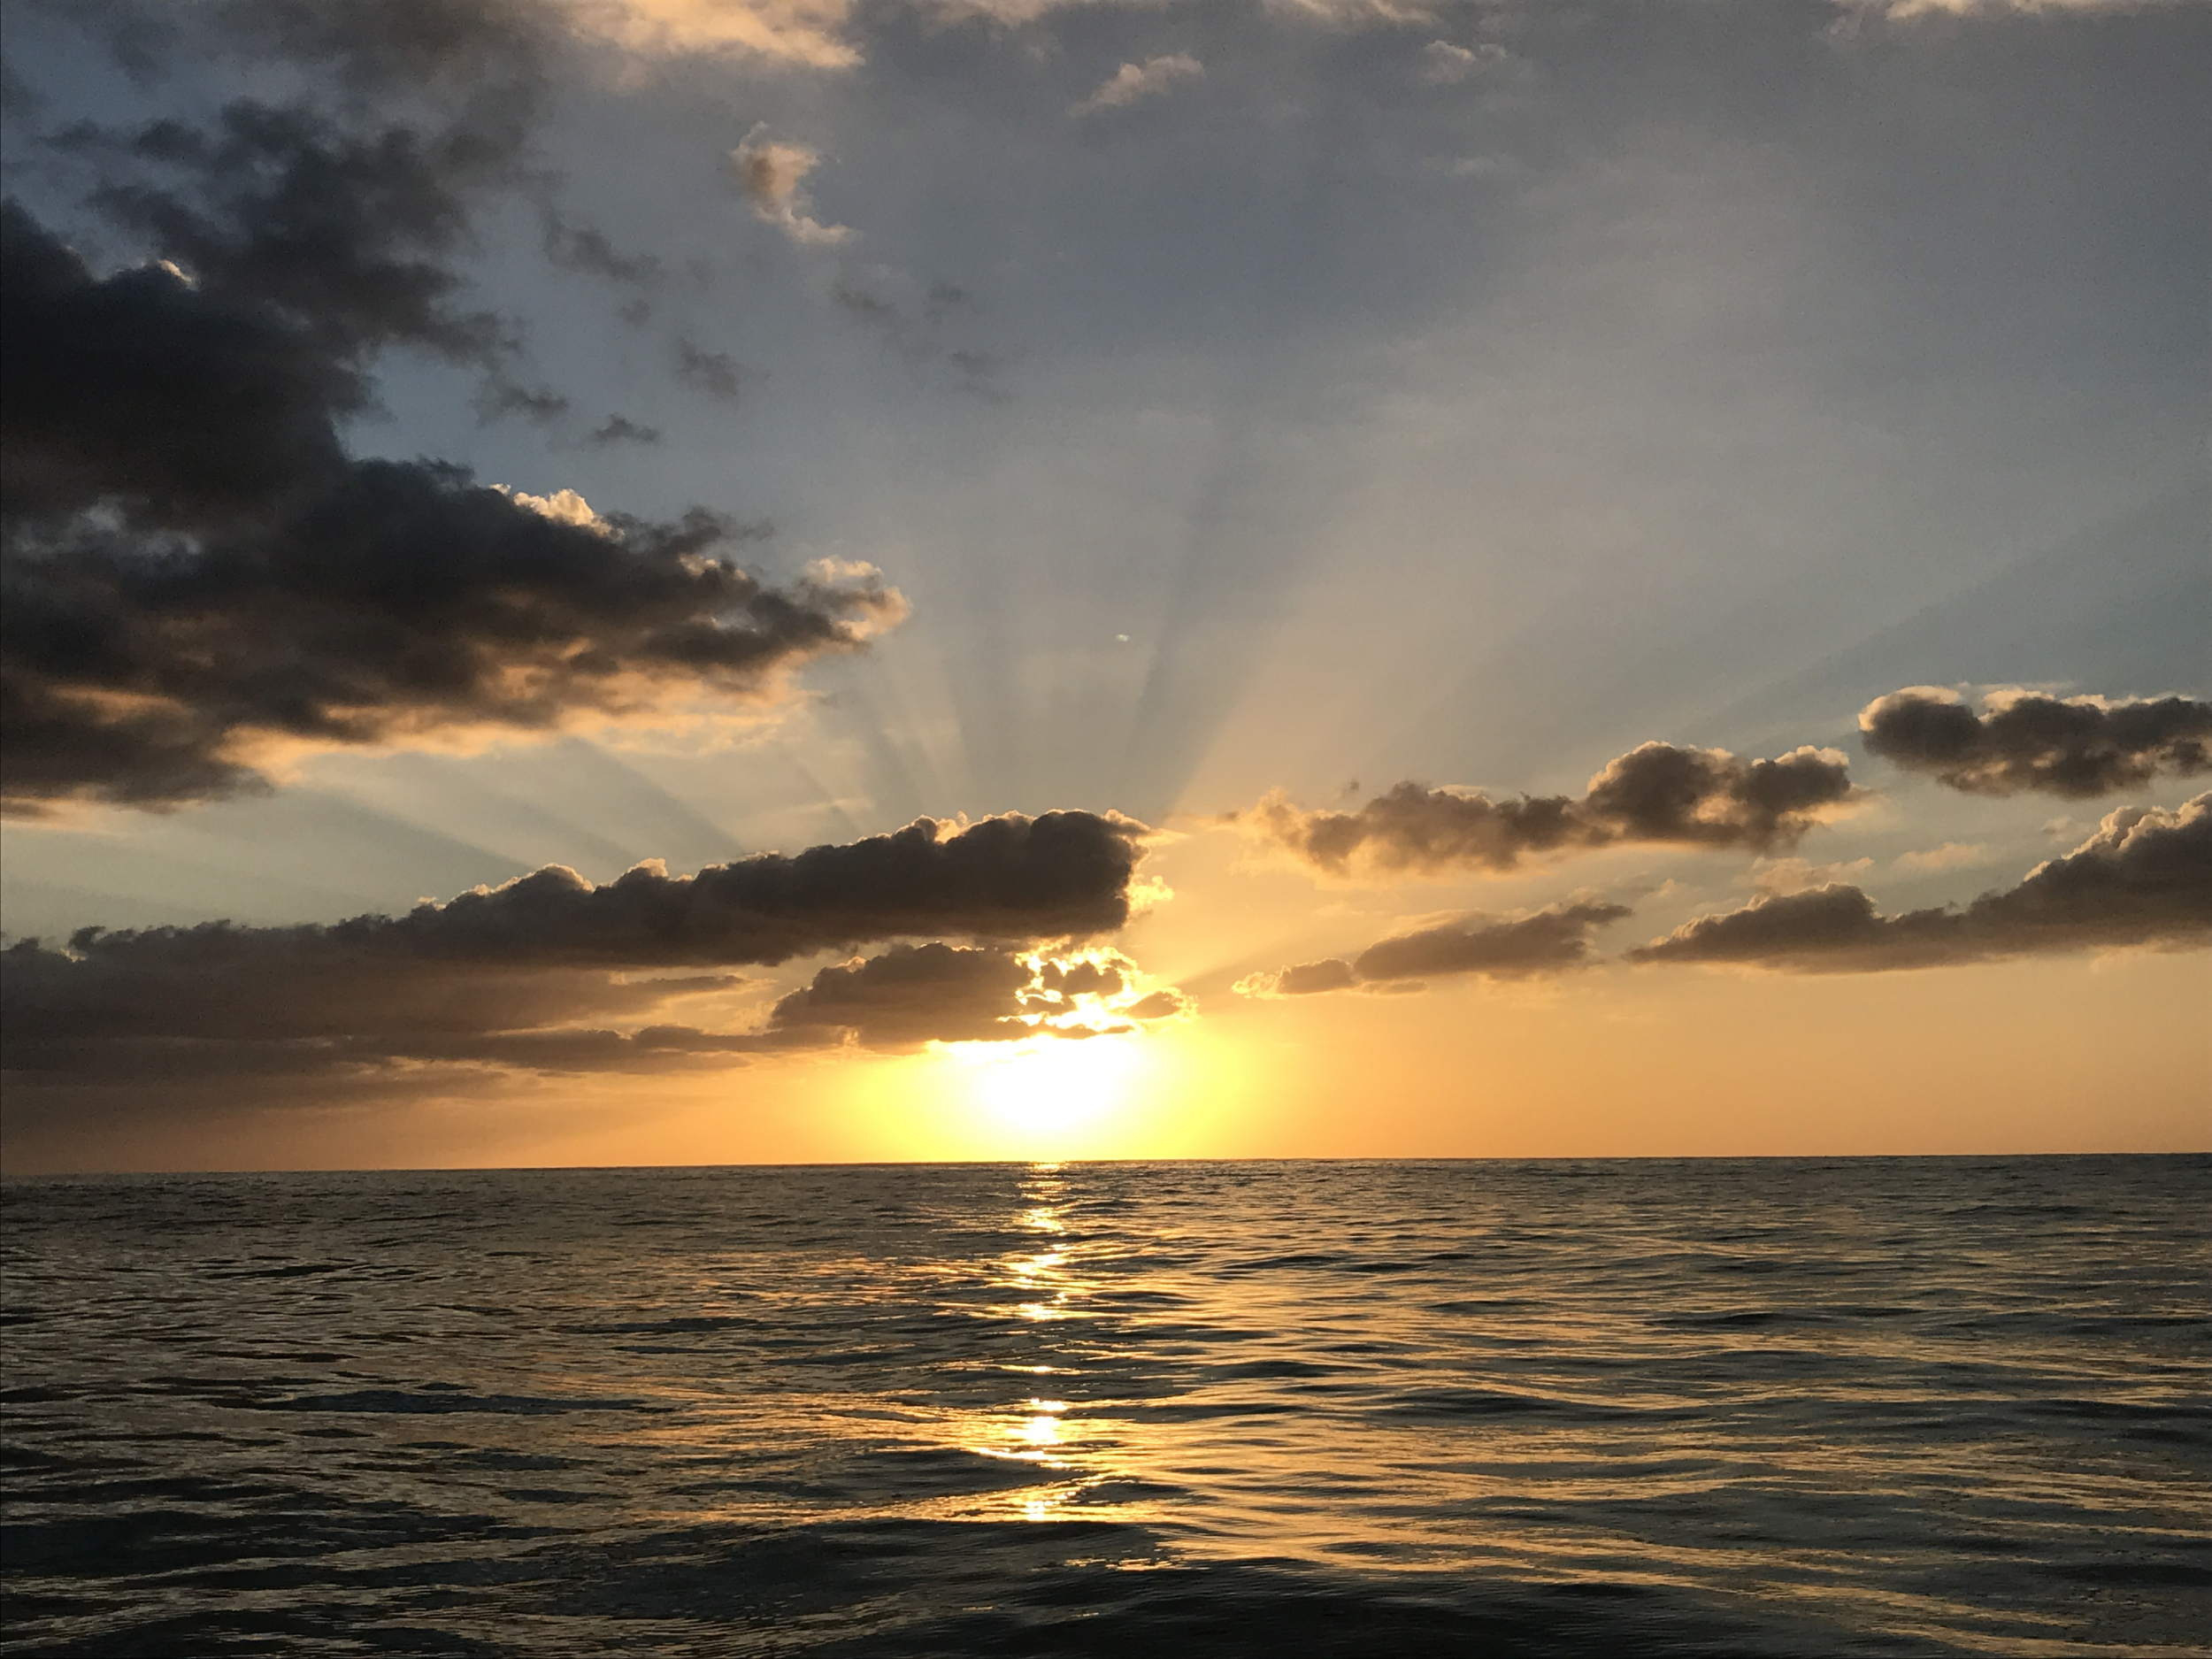 43. Sunset off of Cabo Rojo